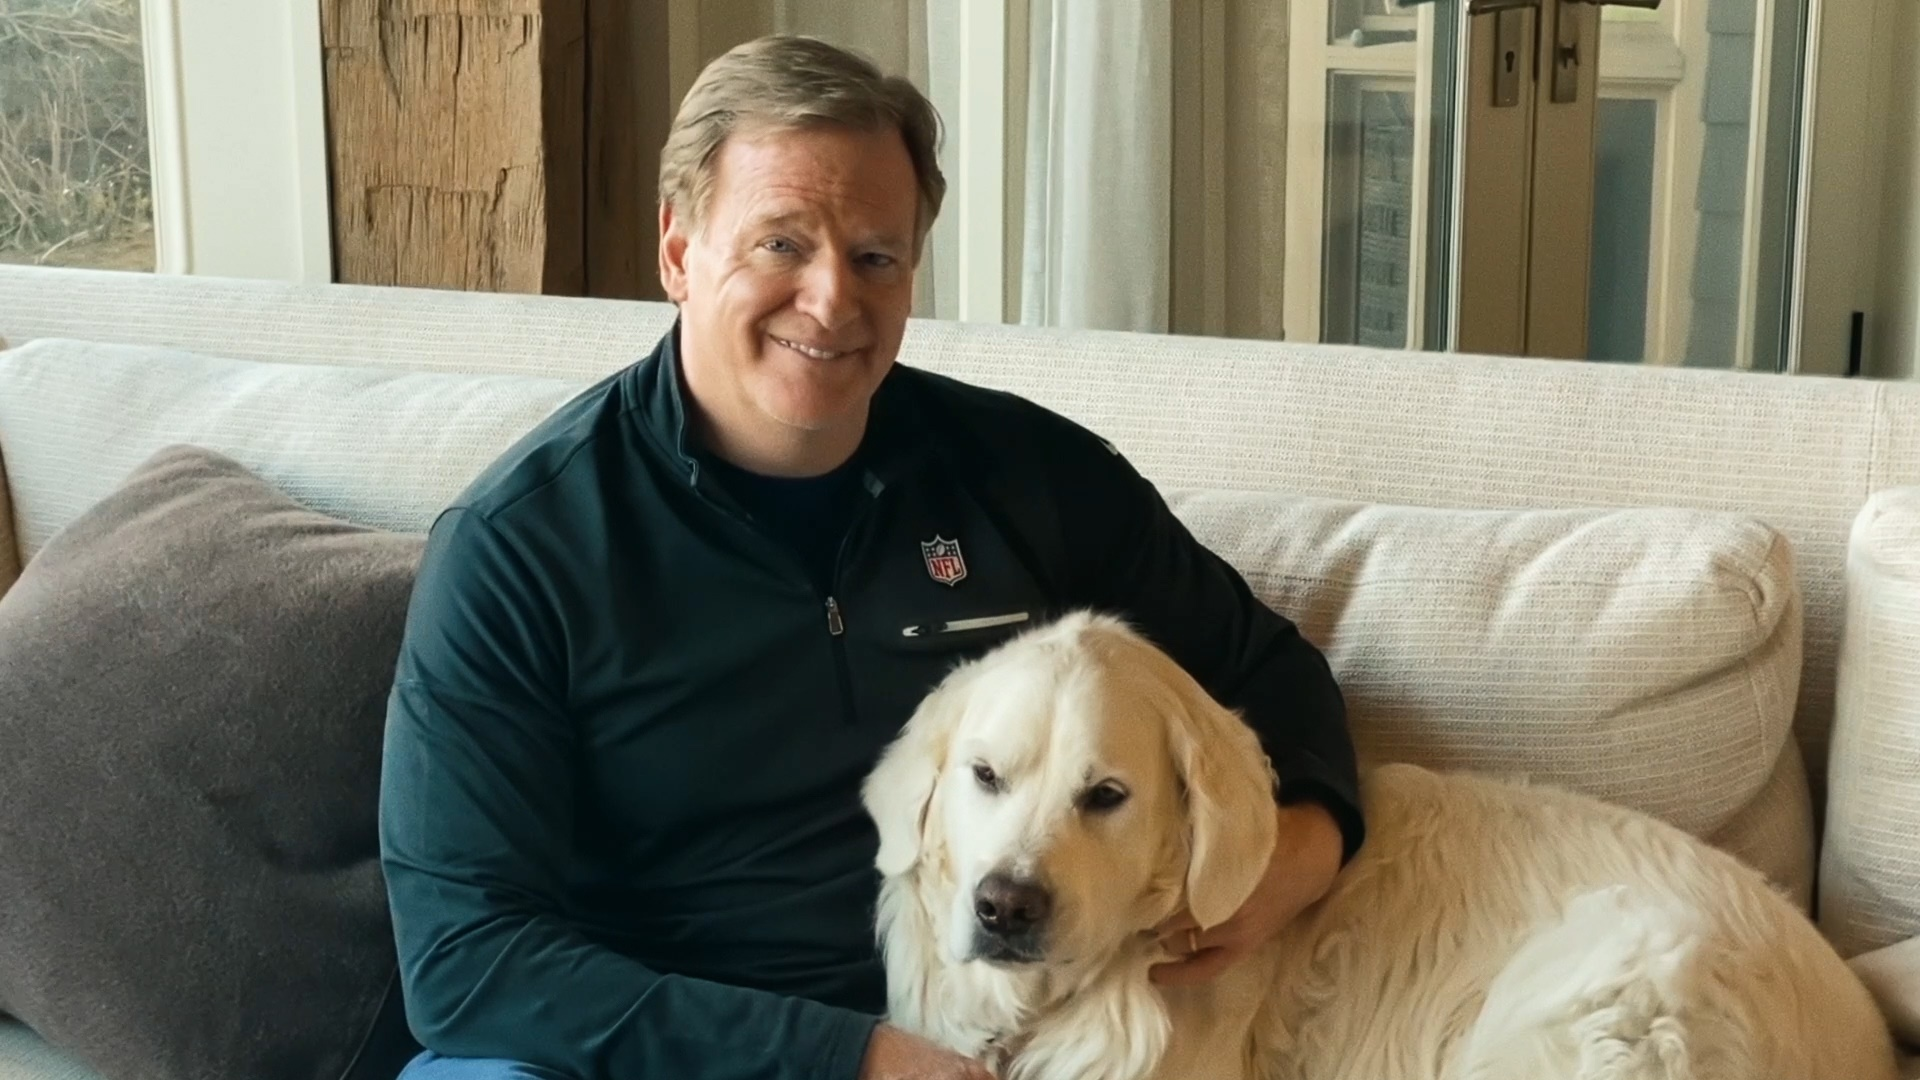 Roger Goodell Boo the Commish 2020